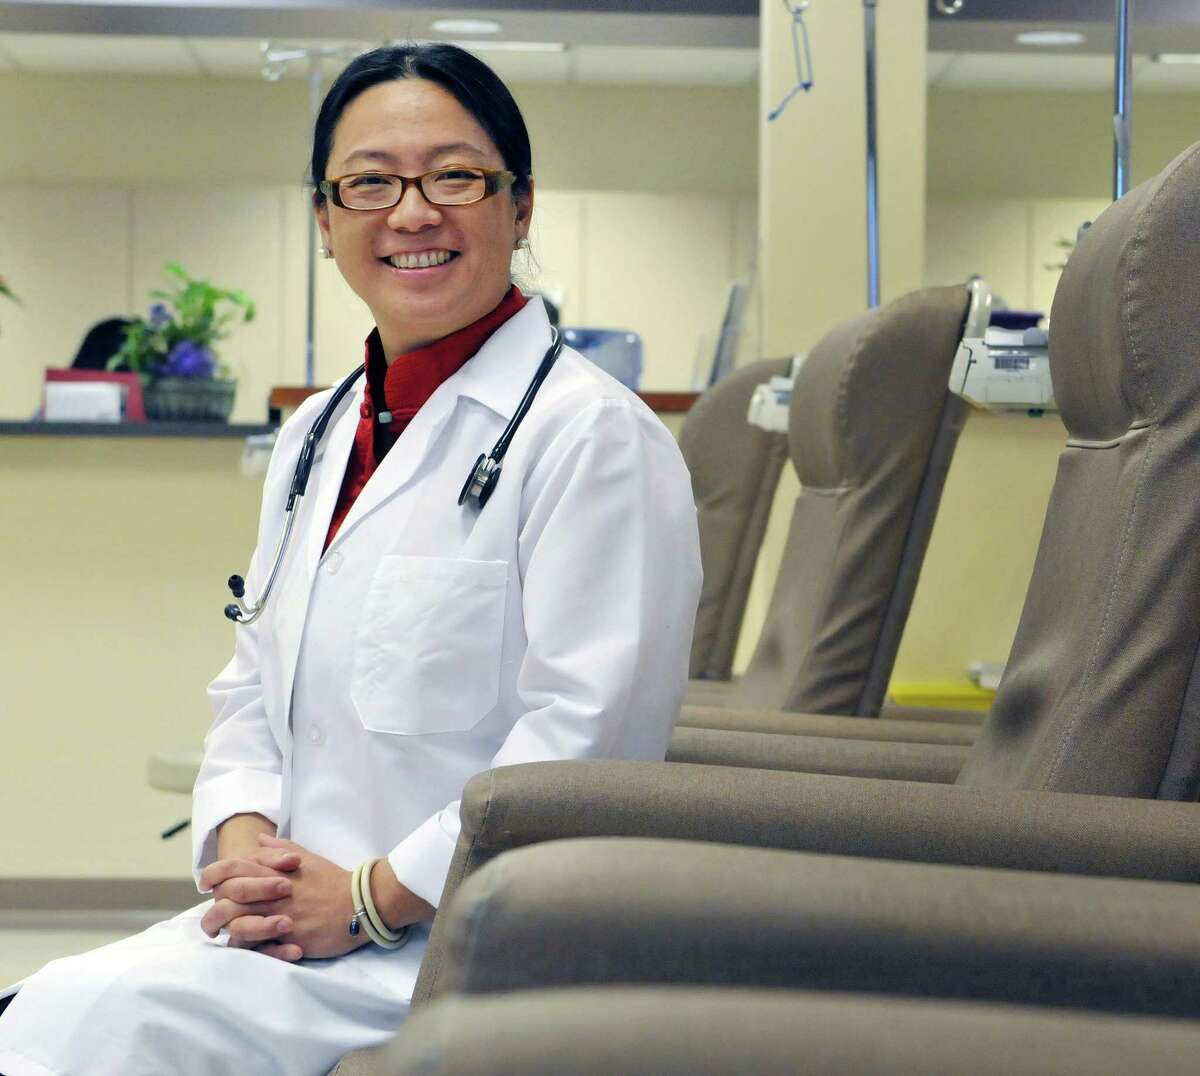 Dr. Nini Wu, president of New York Oncology Hematology, sits in the infusion room of their Albany Cancer Center on Monday, Jan. 26, 2015, in Albany, N.Y. (Paul Buckowski / Times Union)